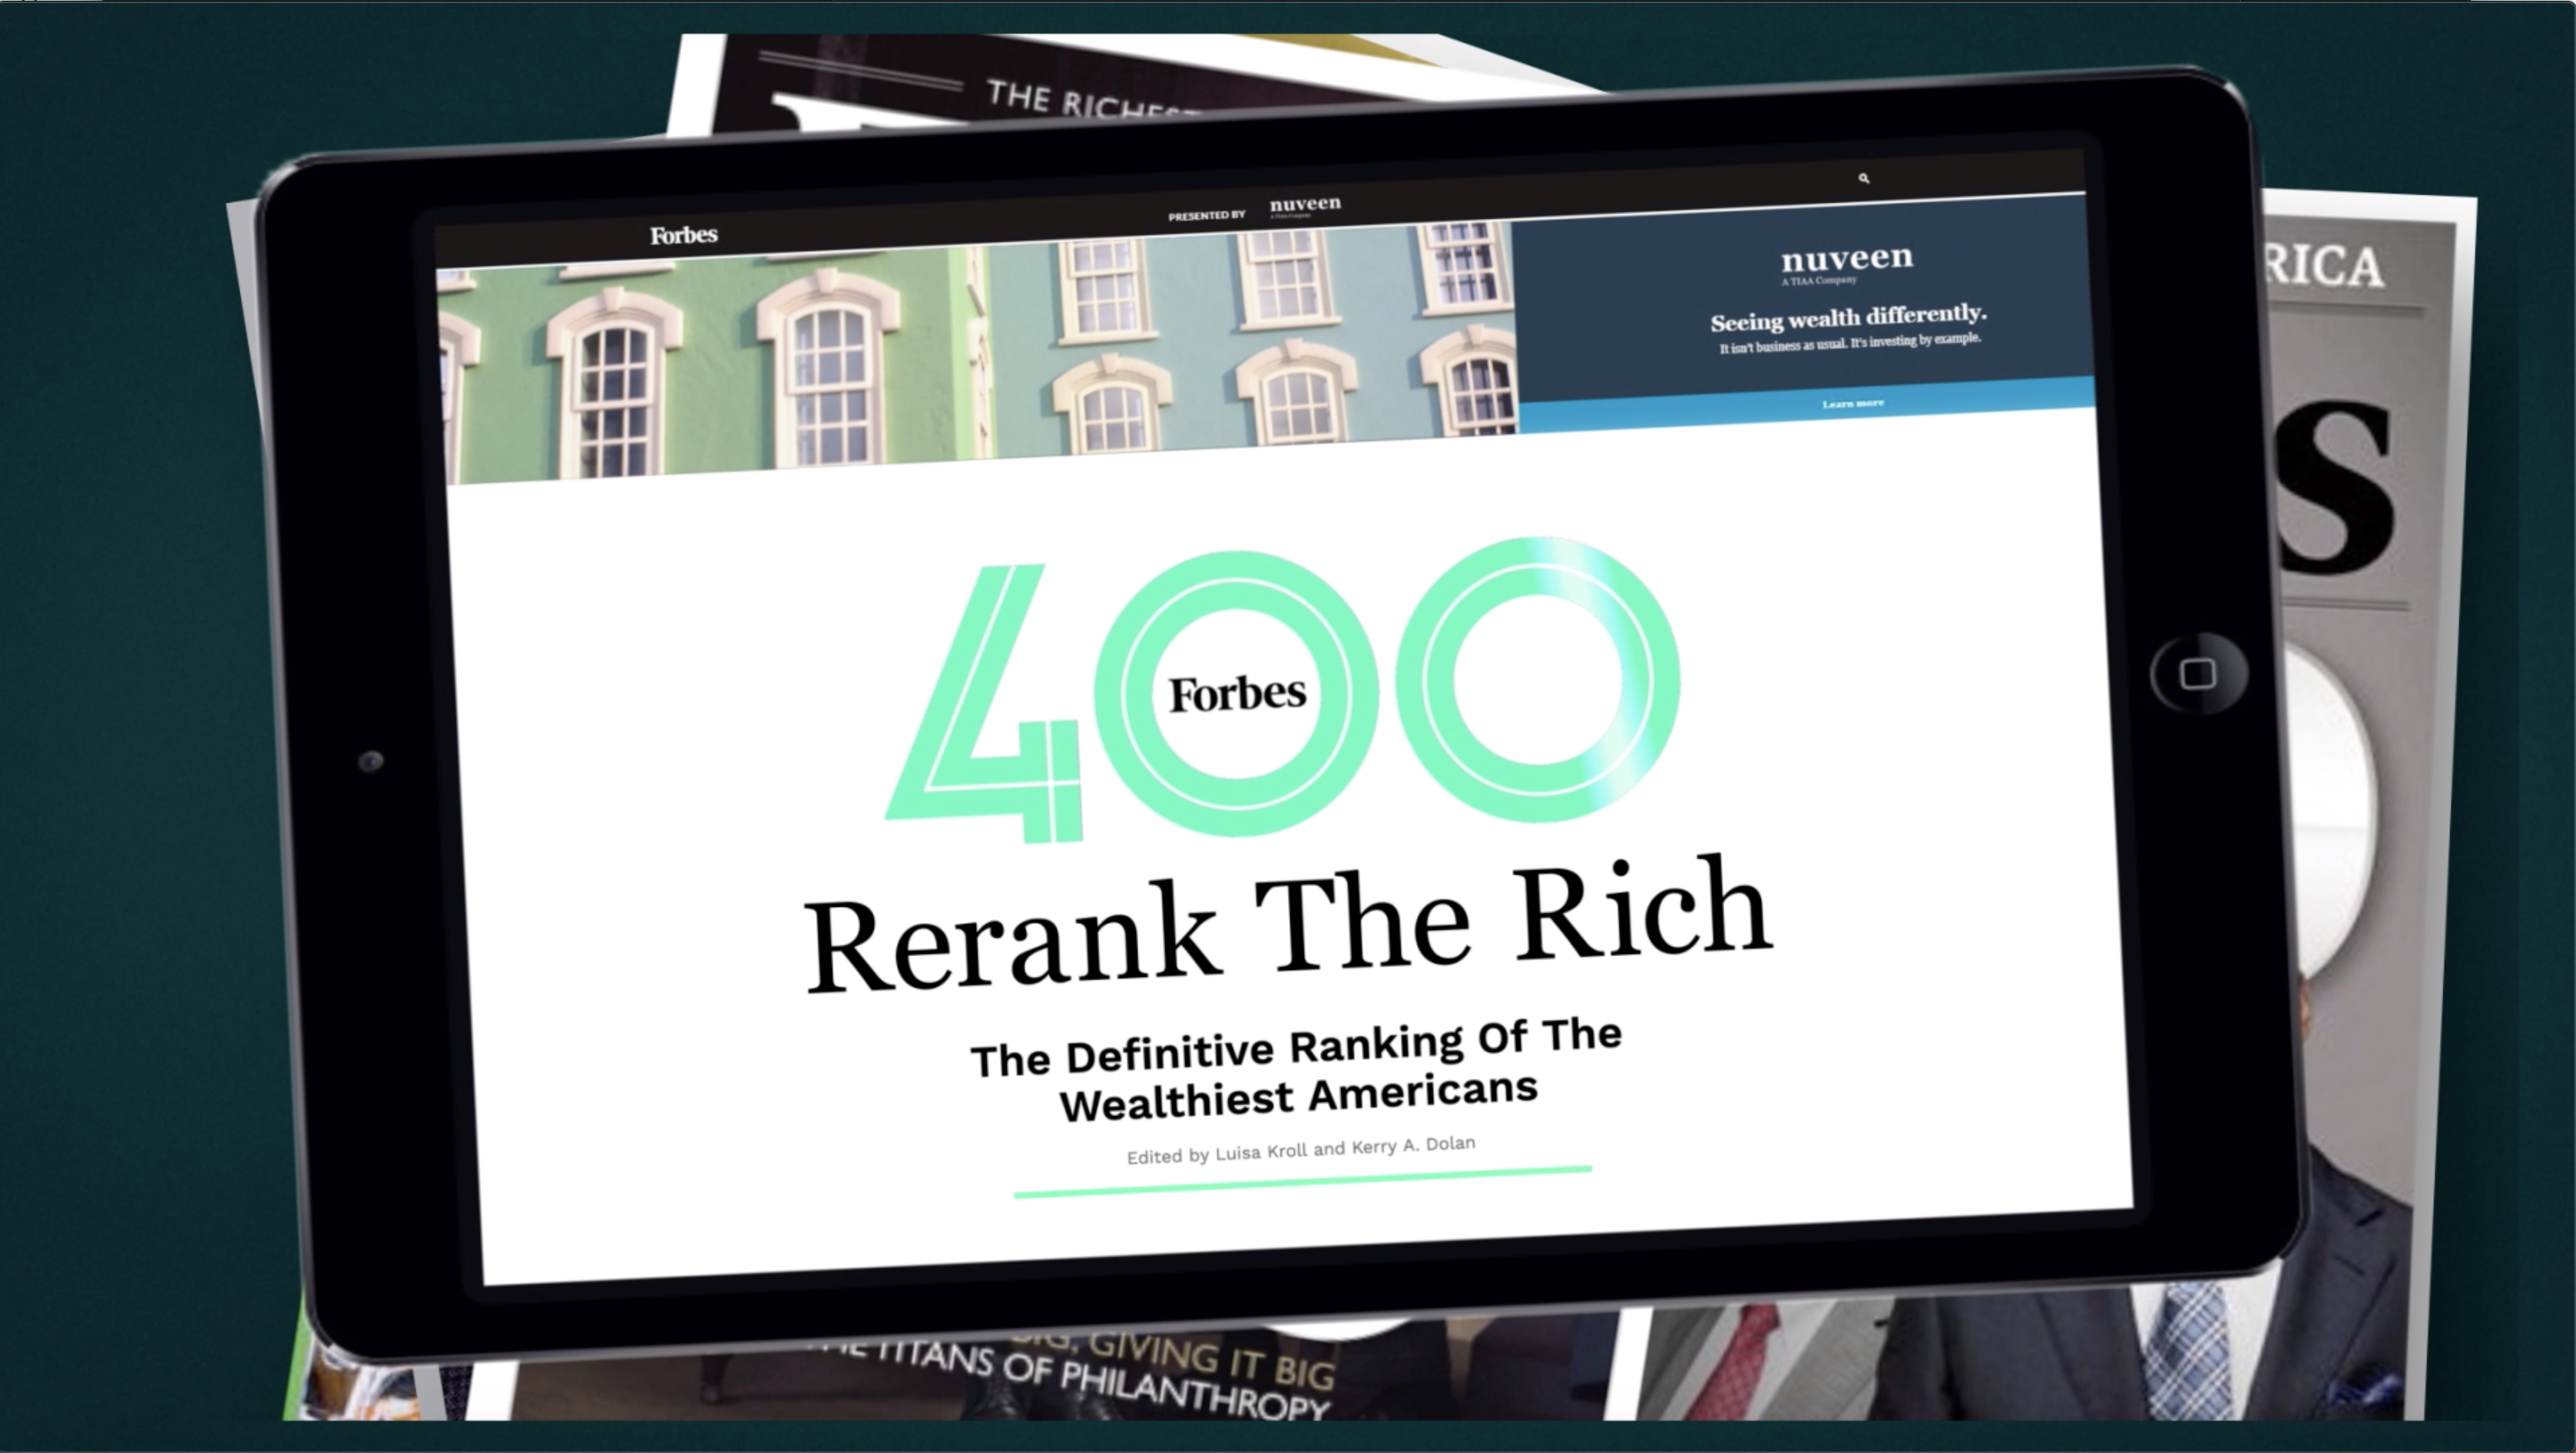 Rerank the Rich